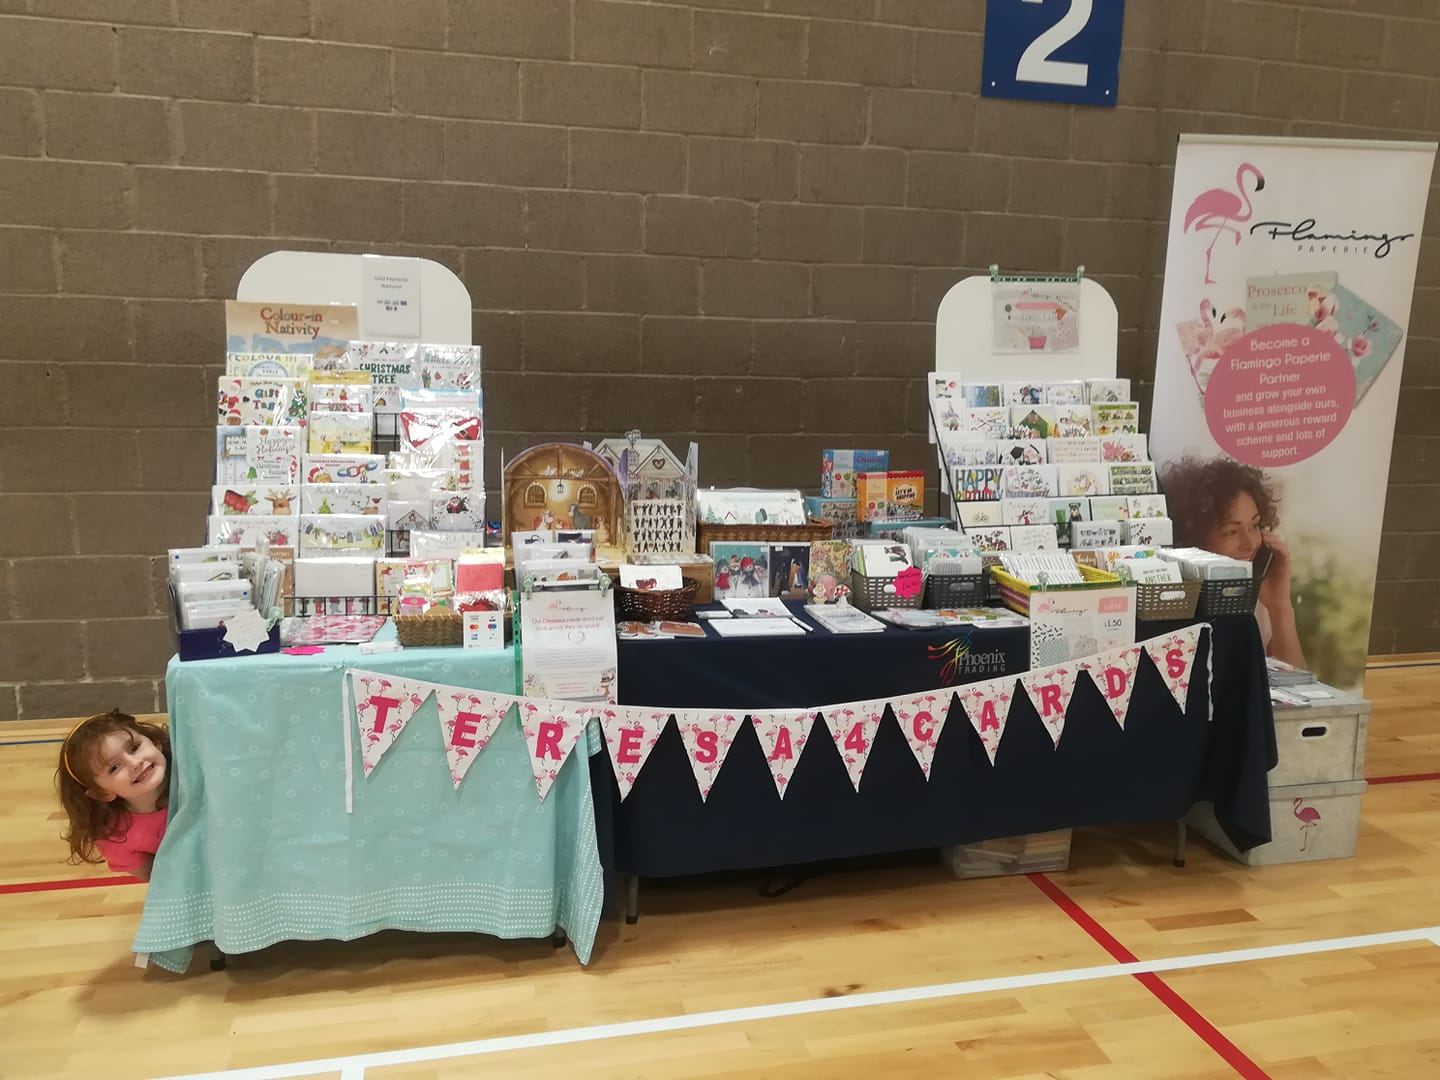 Flamingo Paperie with teresa4cards having a pop-up shop at a Christmas Fair